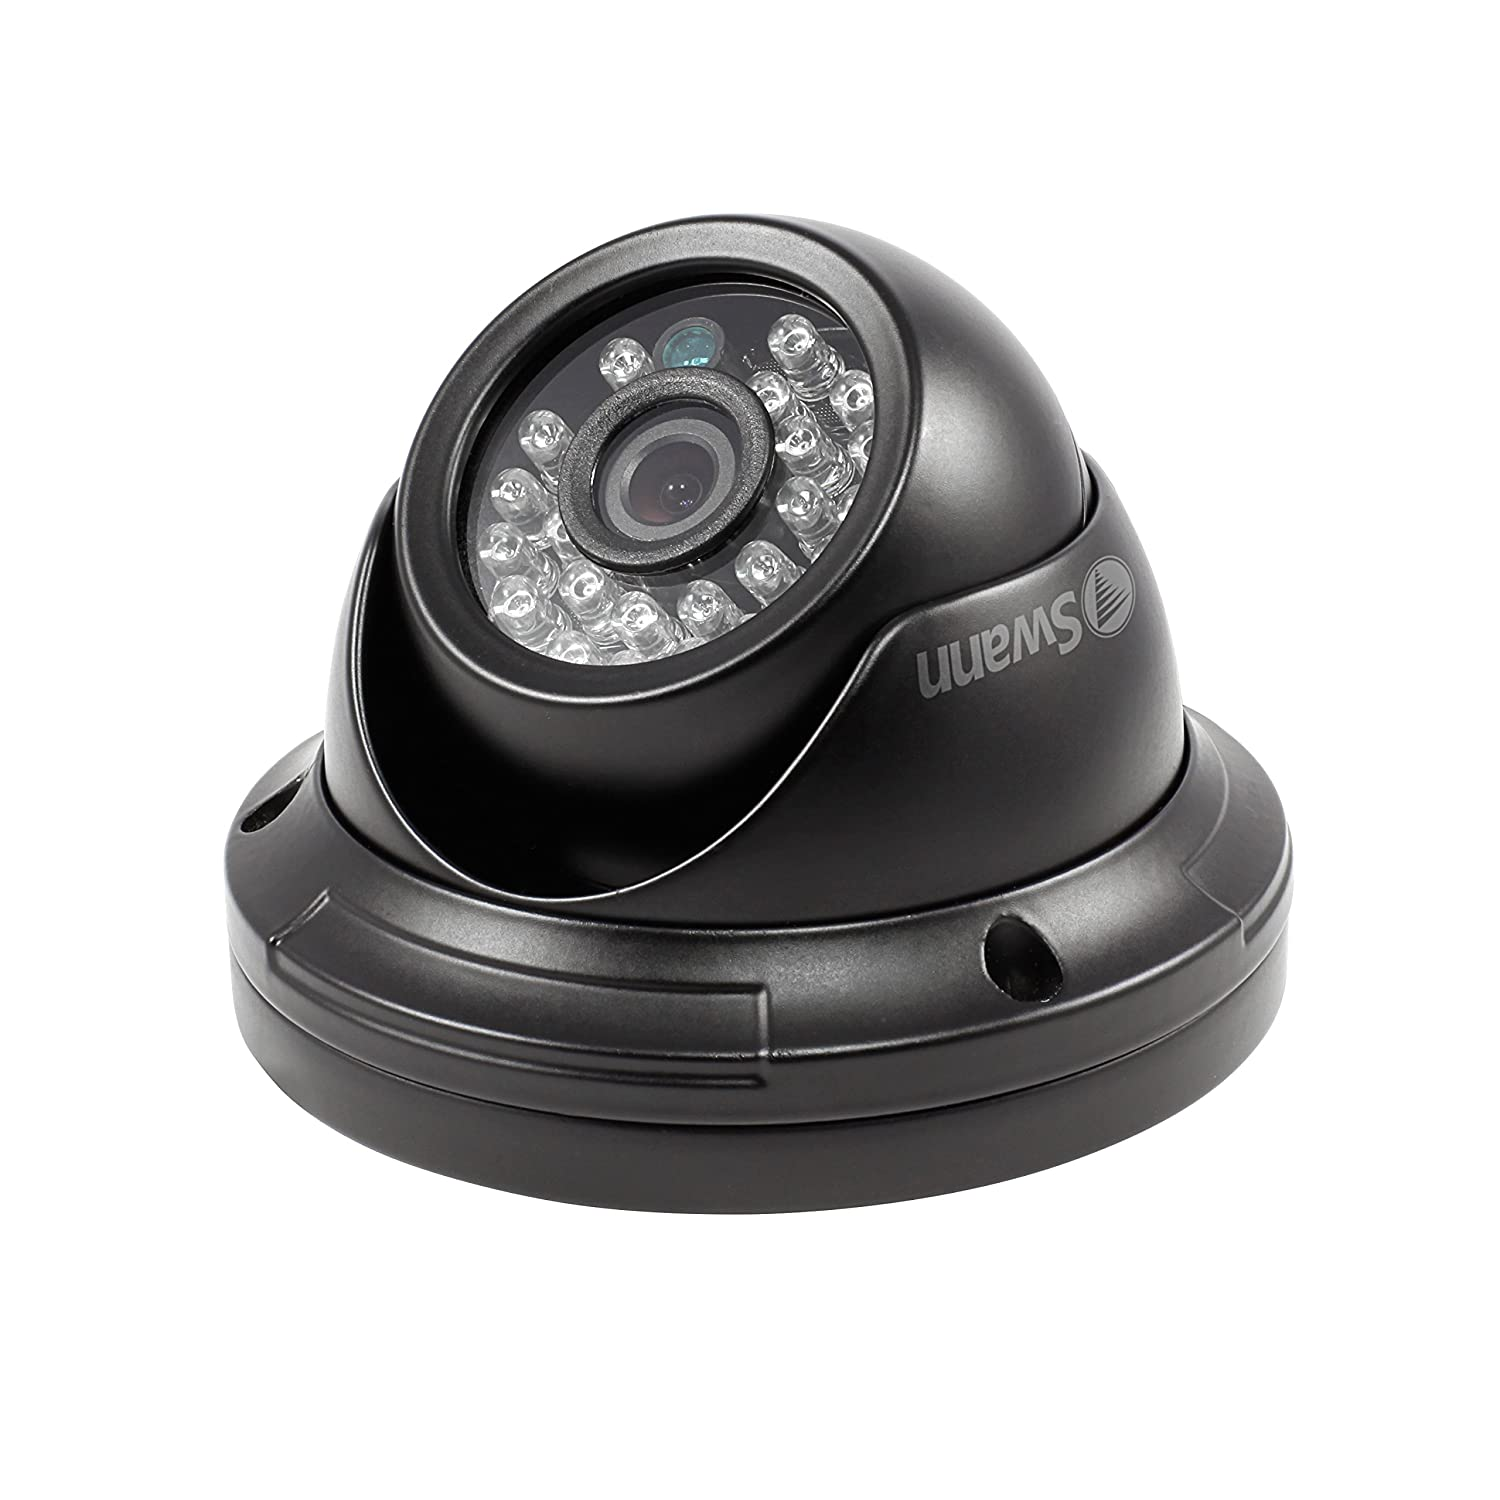 PRO-A851-720P Multi-Purpose Day Night Security Dome Camera – Night Vision 82 Feet 25 Meter